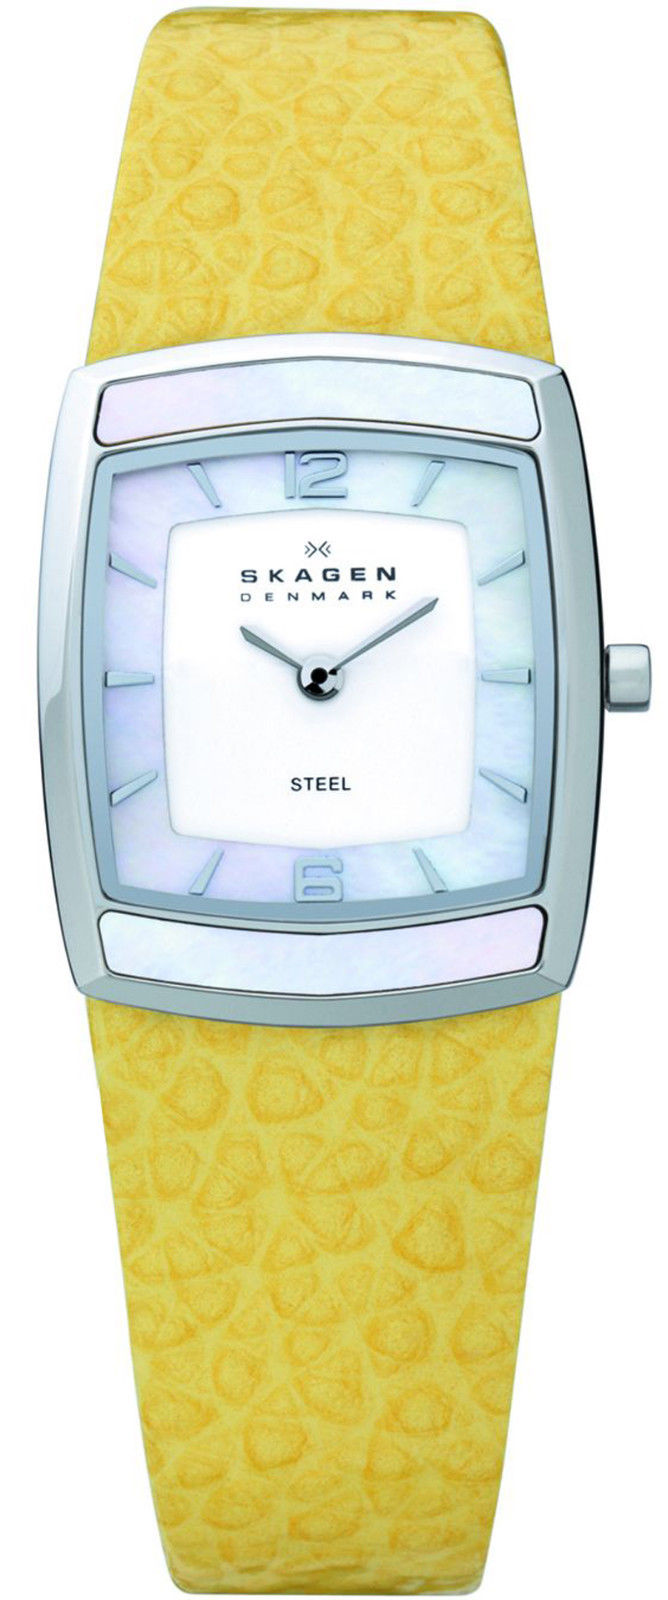 """Image of """"Skagen Denmark 855Ssly Stainless Steel White Dial Yellow 24mm Watch"""""""